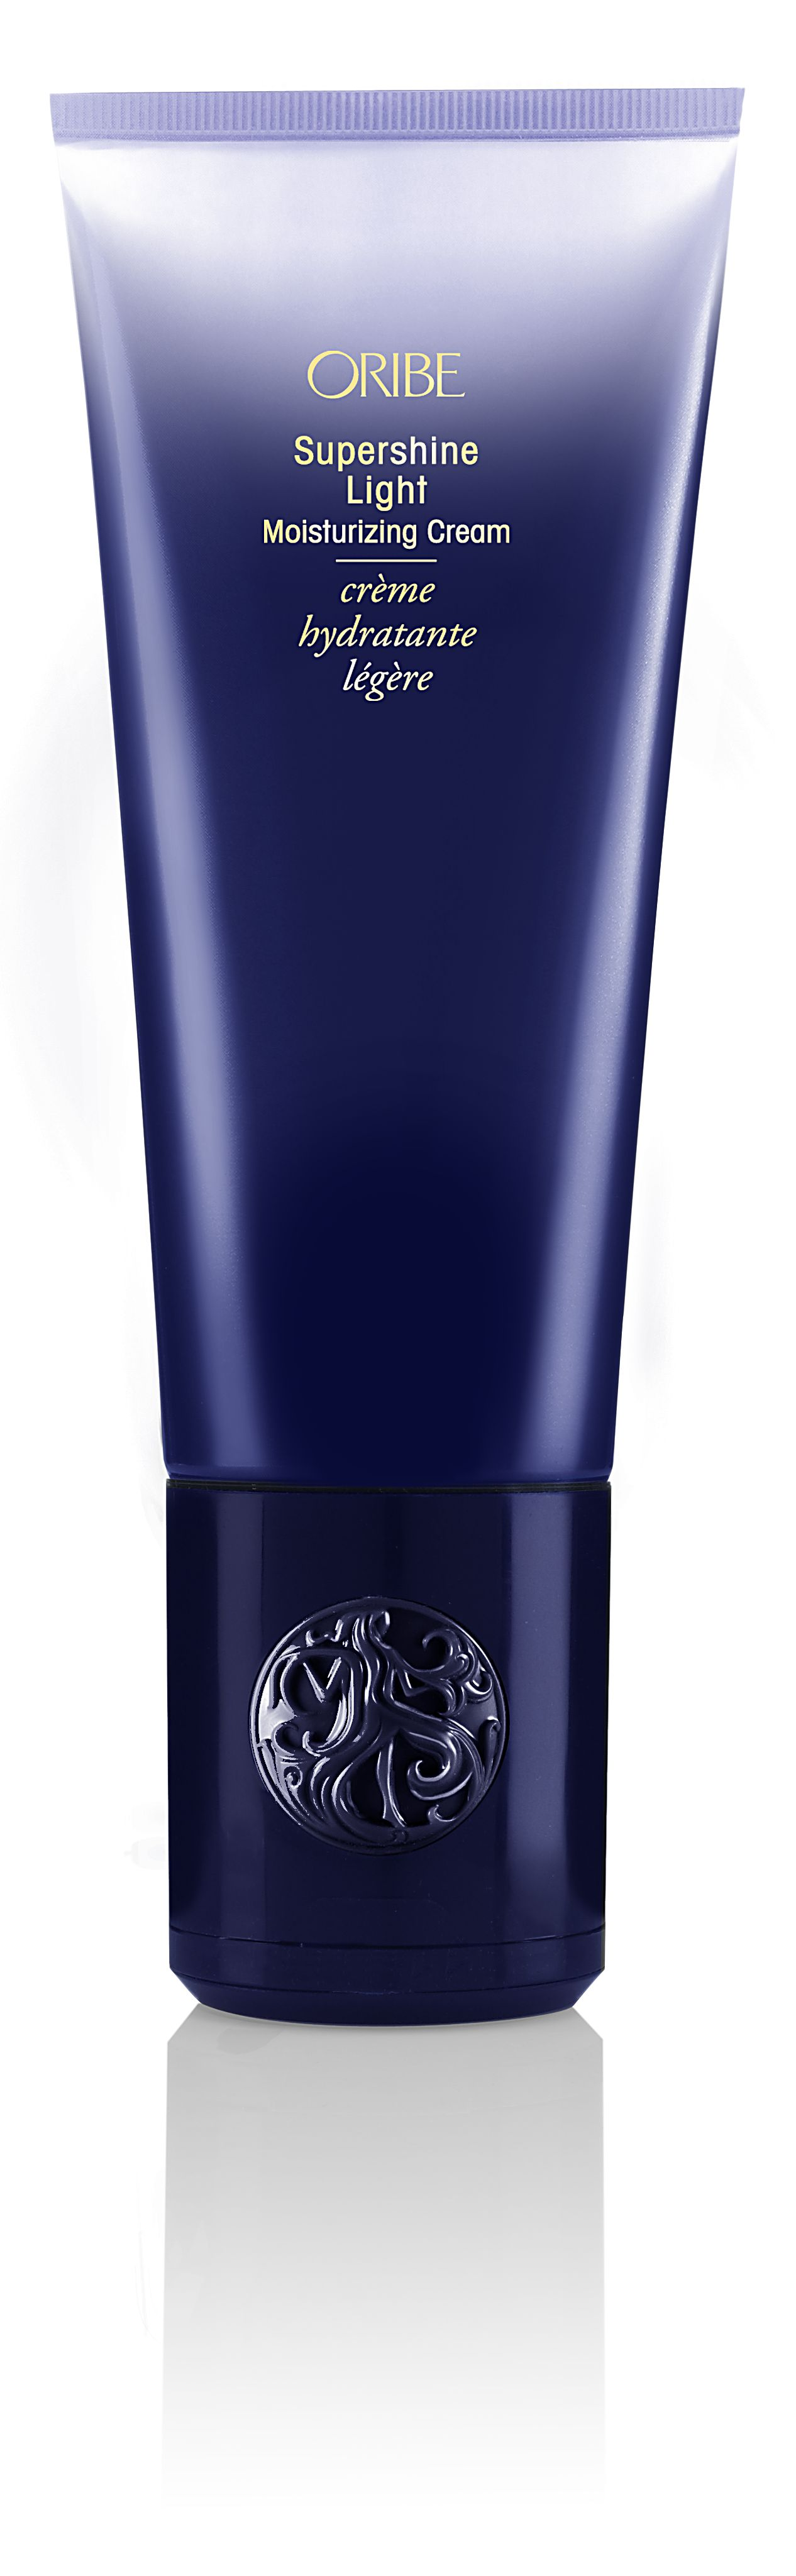 Oribe Supershine Light